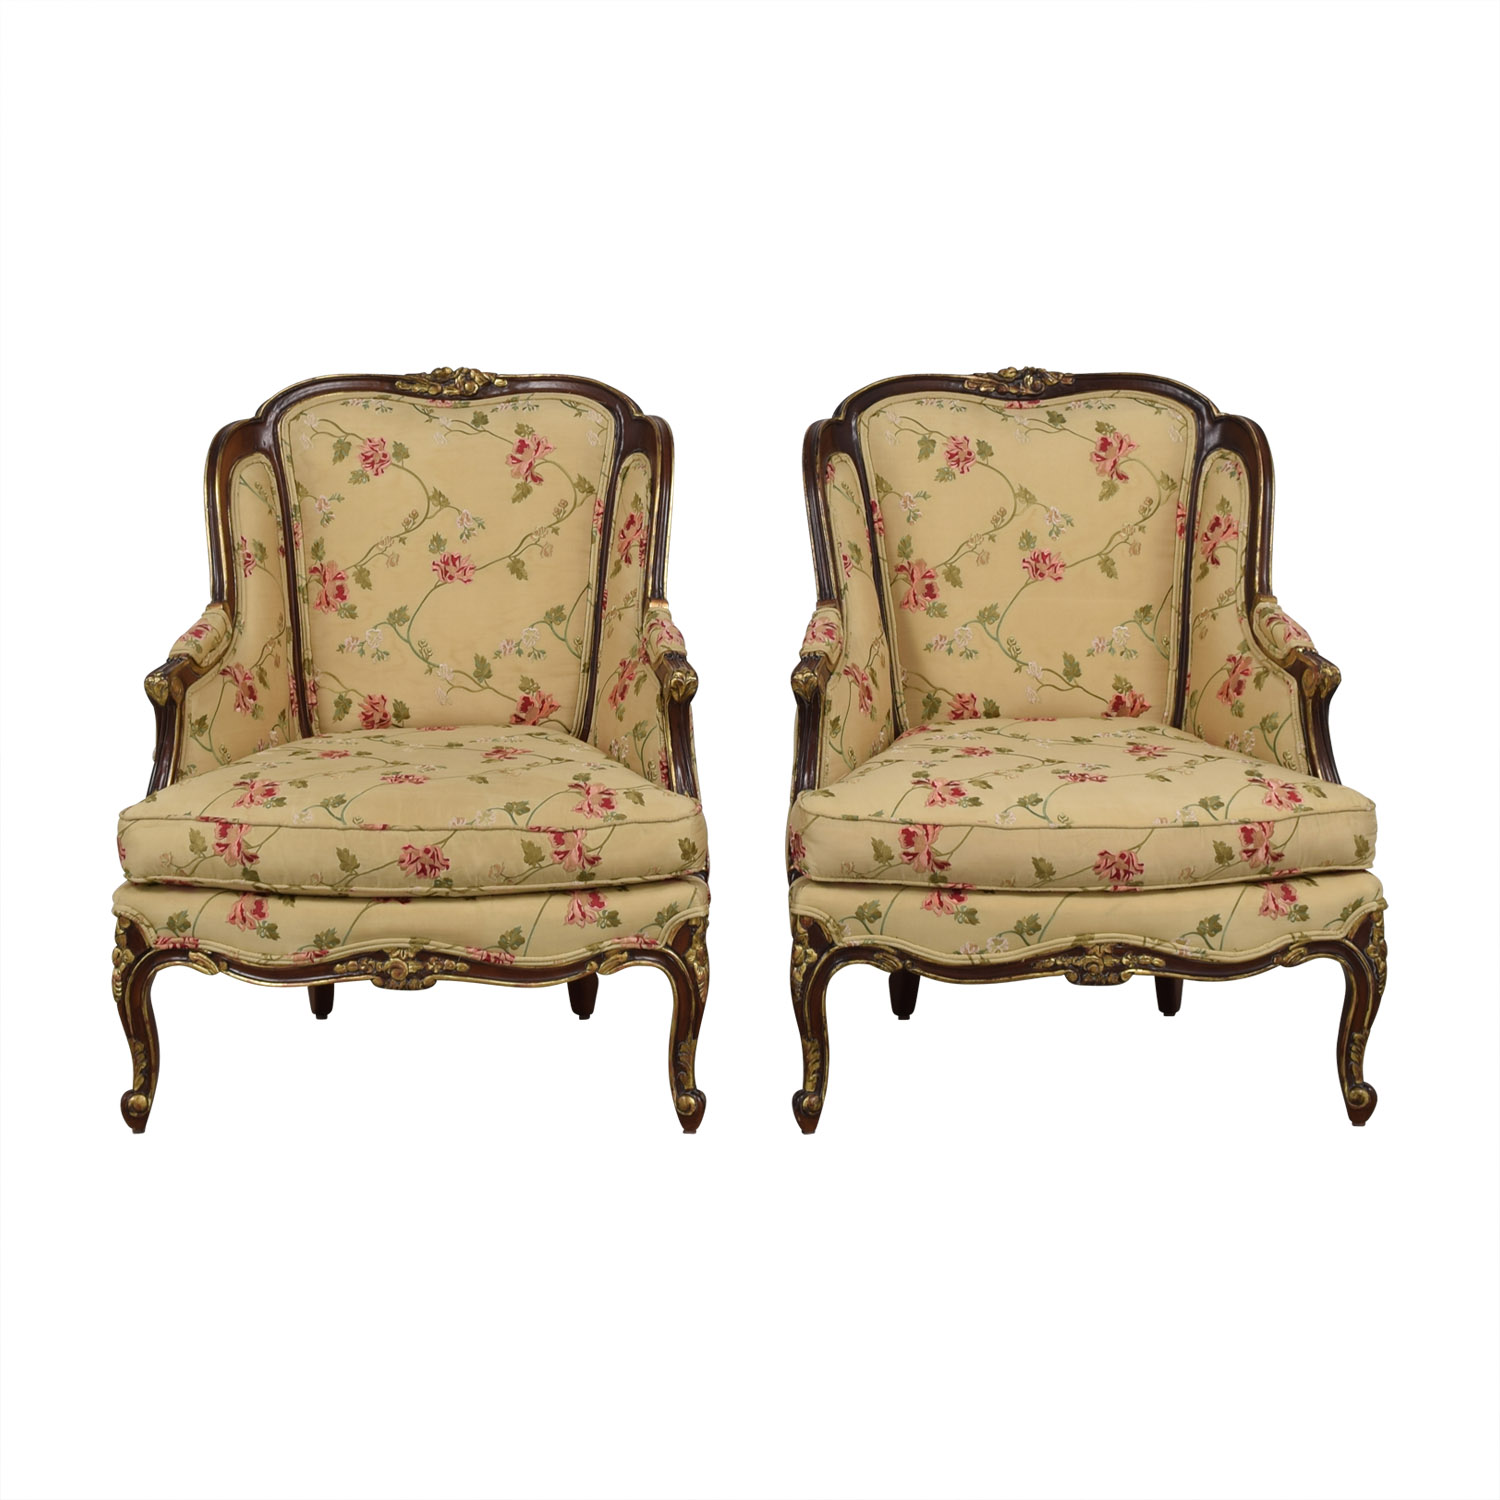 Century Furniture Century Furniture Louis Beige Floral Wing Accent Chairs nyc